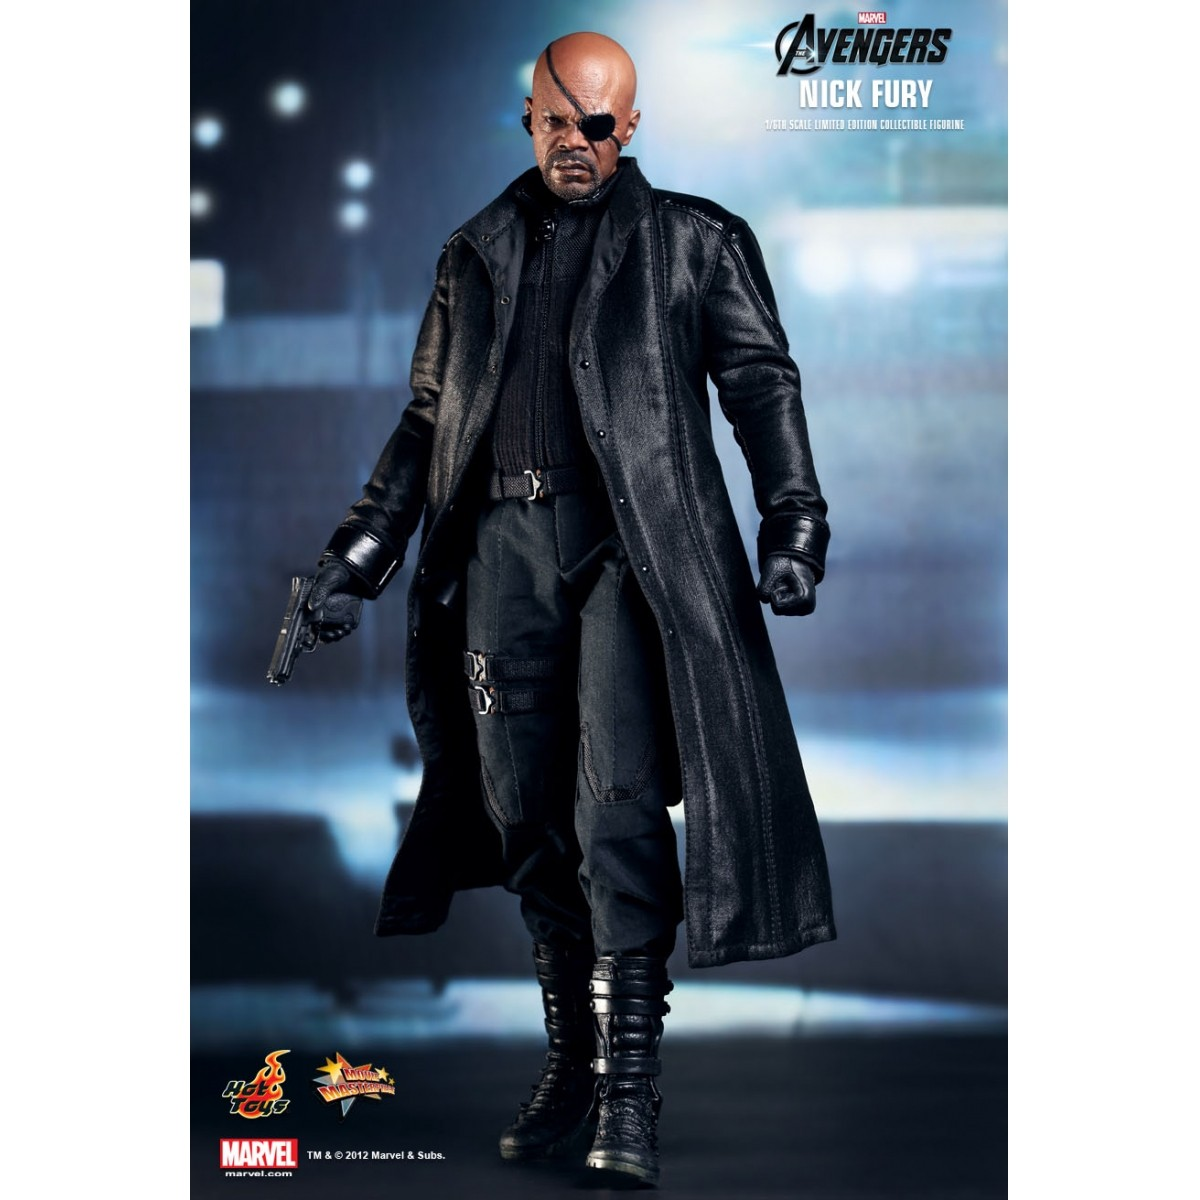 Boneco Nick Fury: Os Vingadores: The Avengers Escala 1/6 - Hot Toys